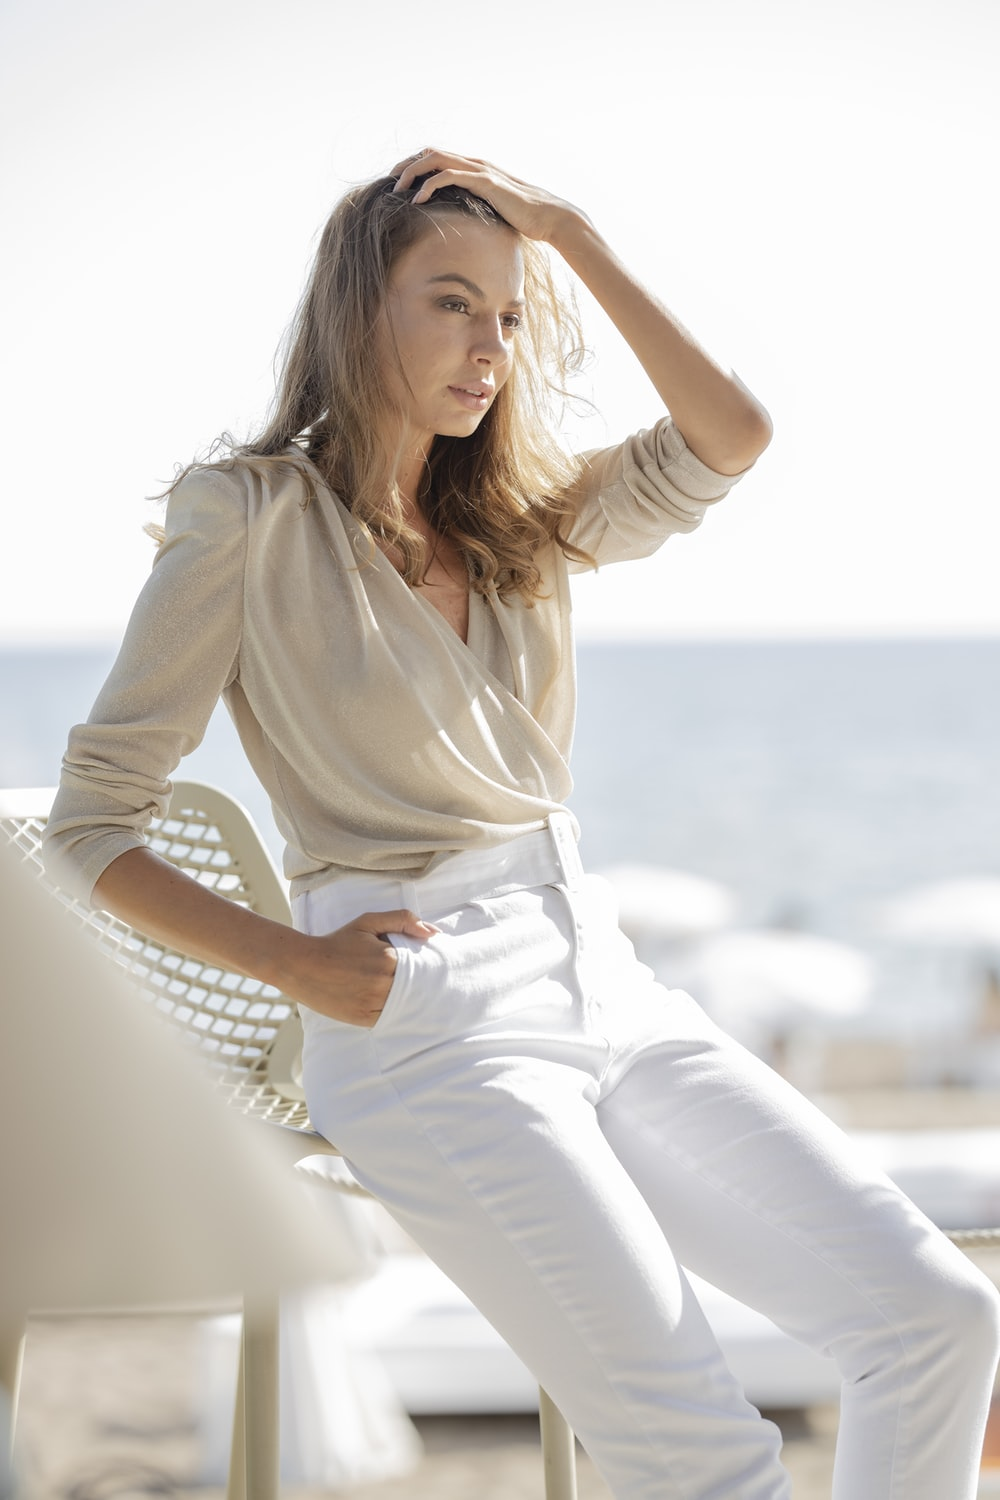 woman in white long sleeve shirt and white pants sitting on white concrete wall during daytime